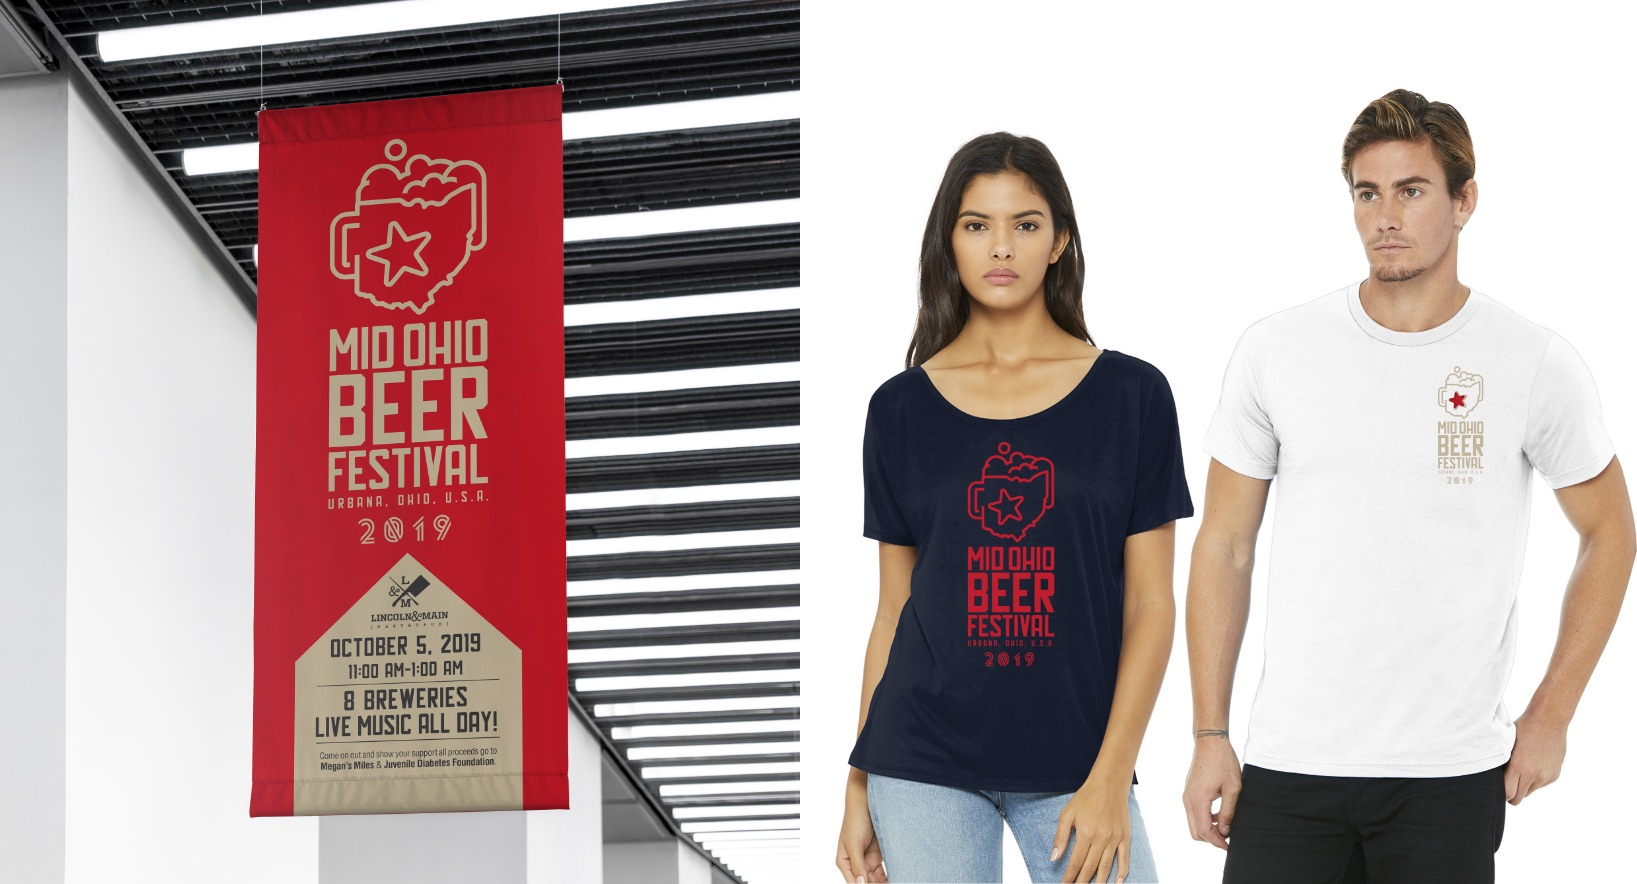 Mid Ohio Beer Fest Hanging Banner and Apparel